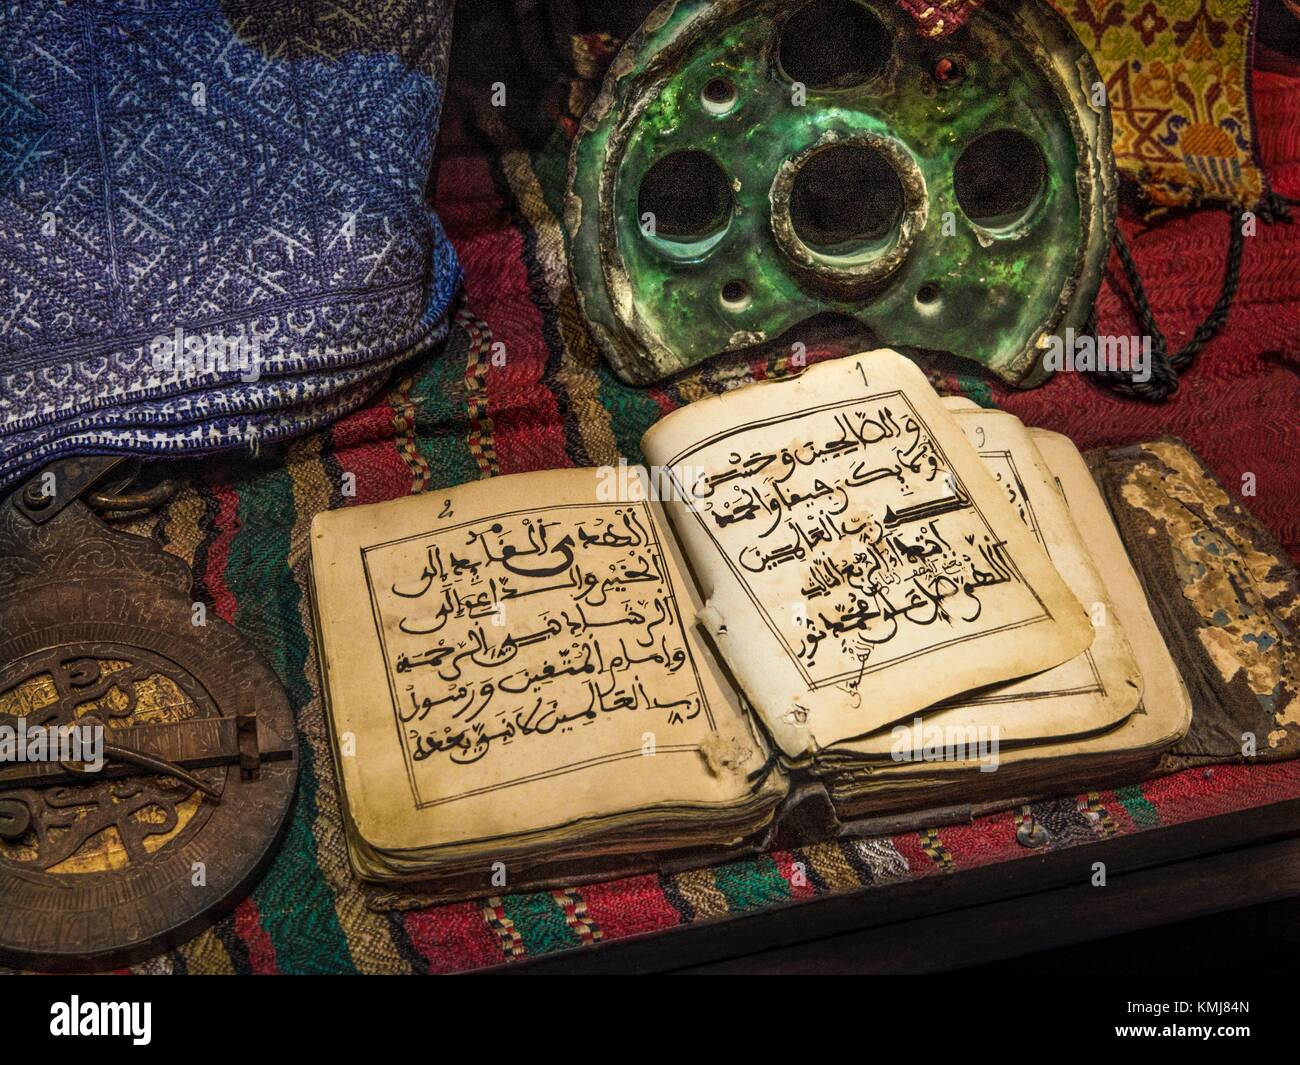 Morocco, Fes, old religious book, 18th Century, an astrolabe, an ink box, and some old pieces of textiles. - Stock Image